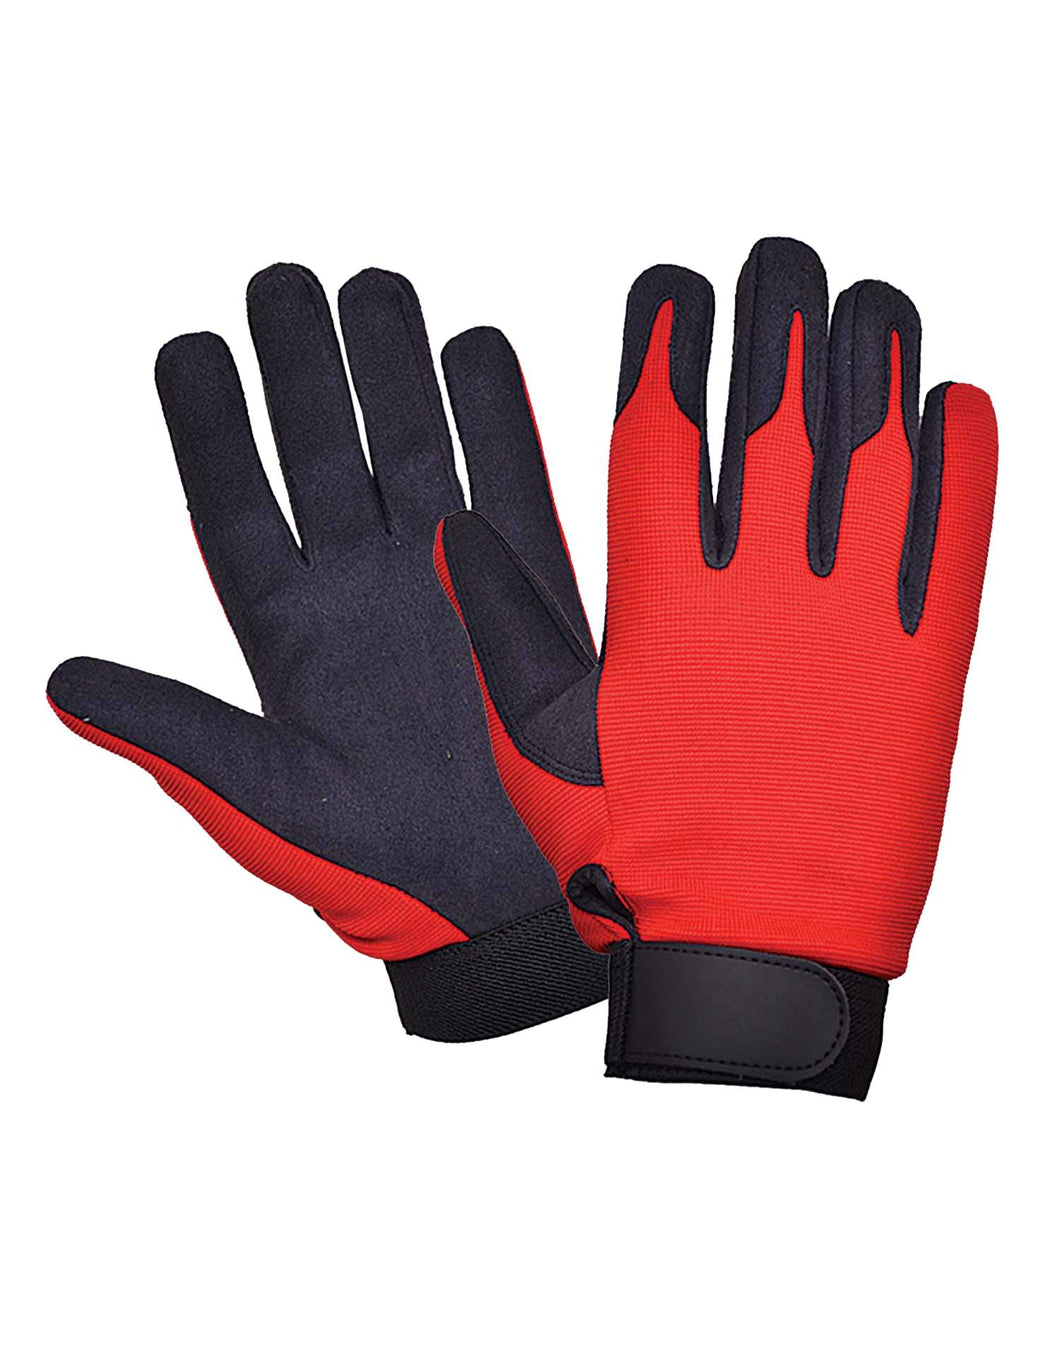 UNIK Full Finger Mechanic Gloves